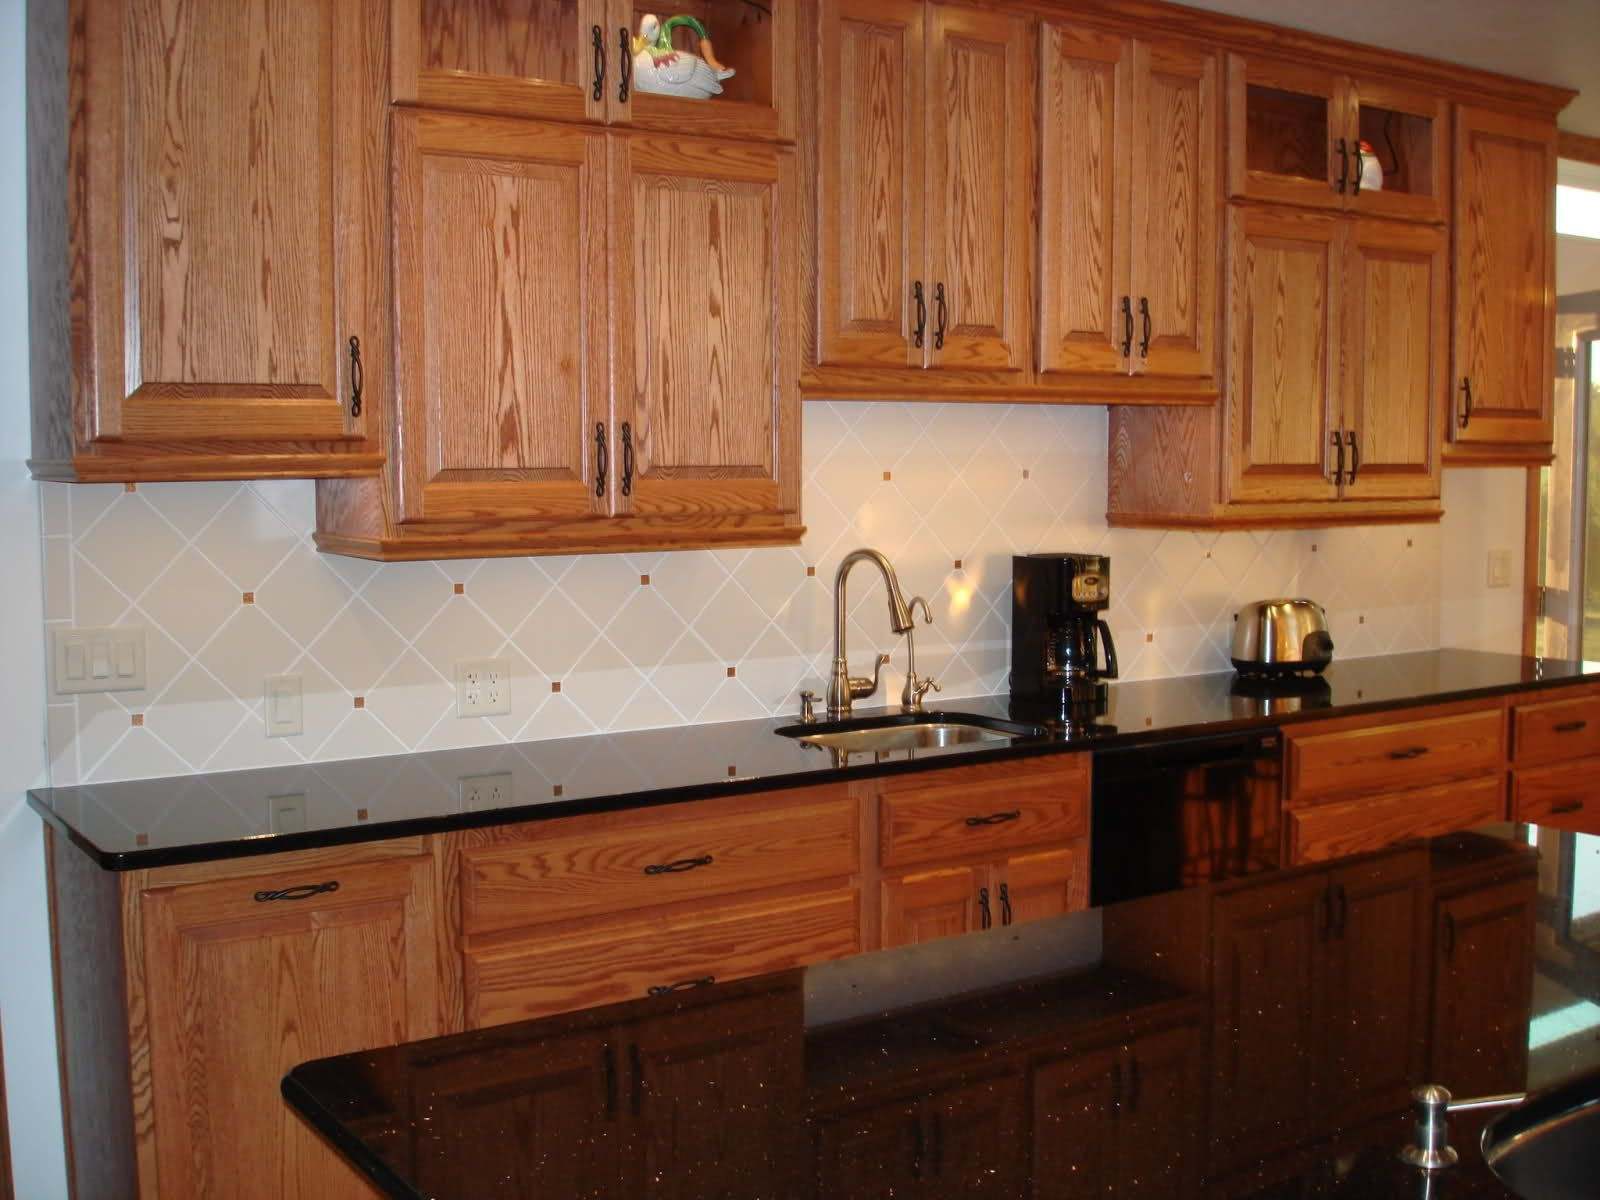 Oak Cabinets Backsplash Backsplash Pictures With Oak Cabinets And Uba Tuba Granite